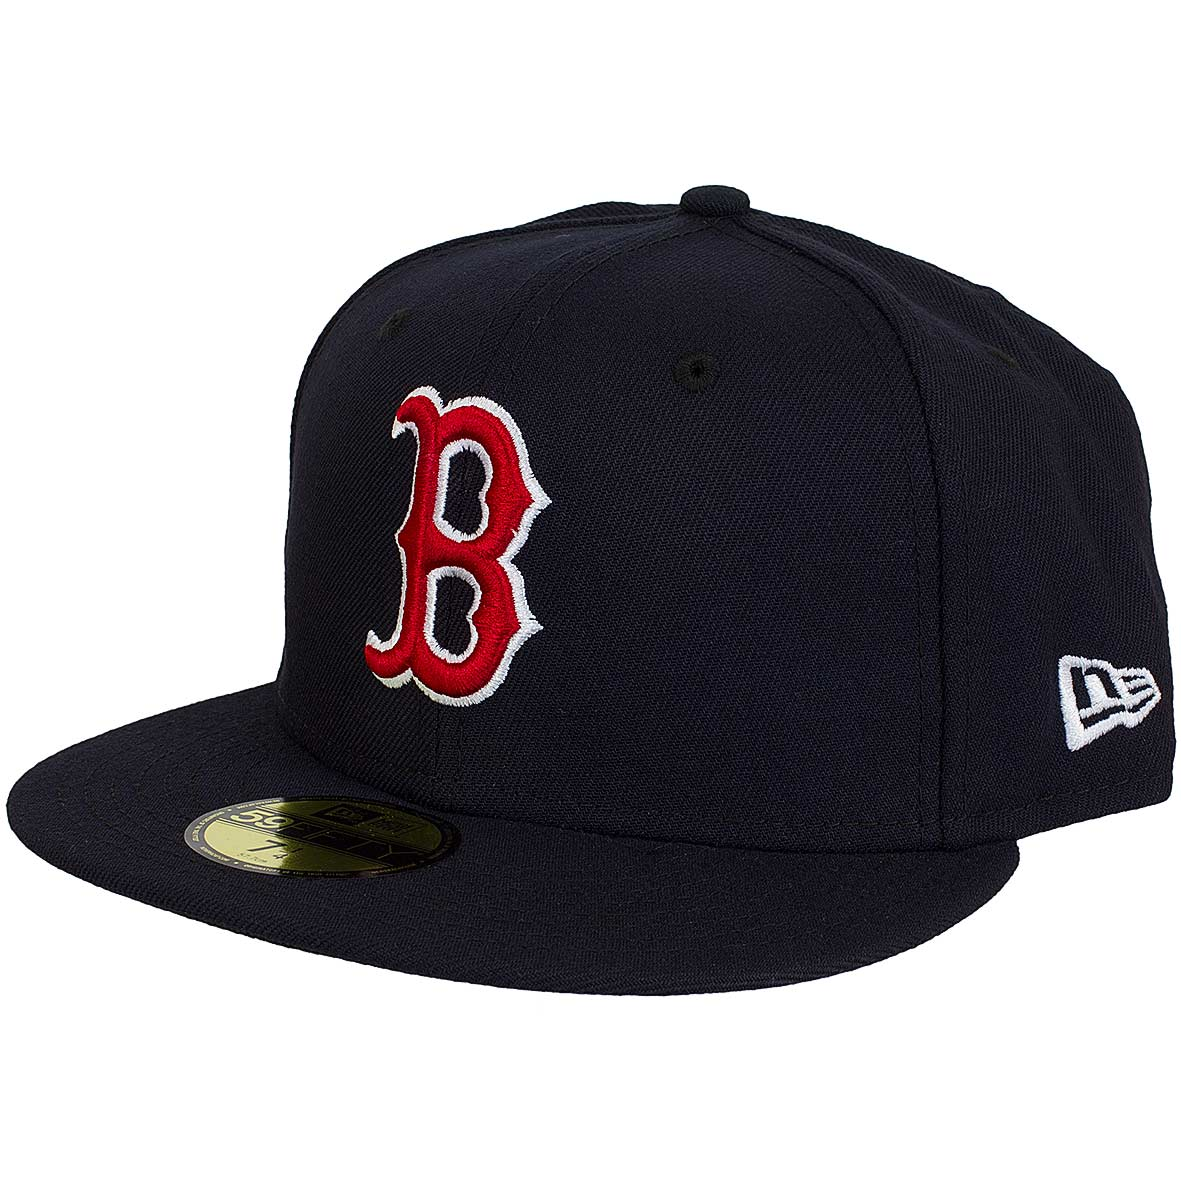 5e84ac3fba76 New Era 59Fifty Fitted Cap Authentic Performance Game Boston Red Sox Game  schwarz rot